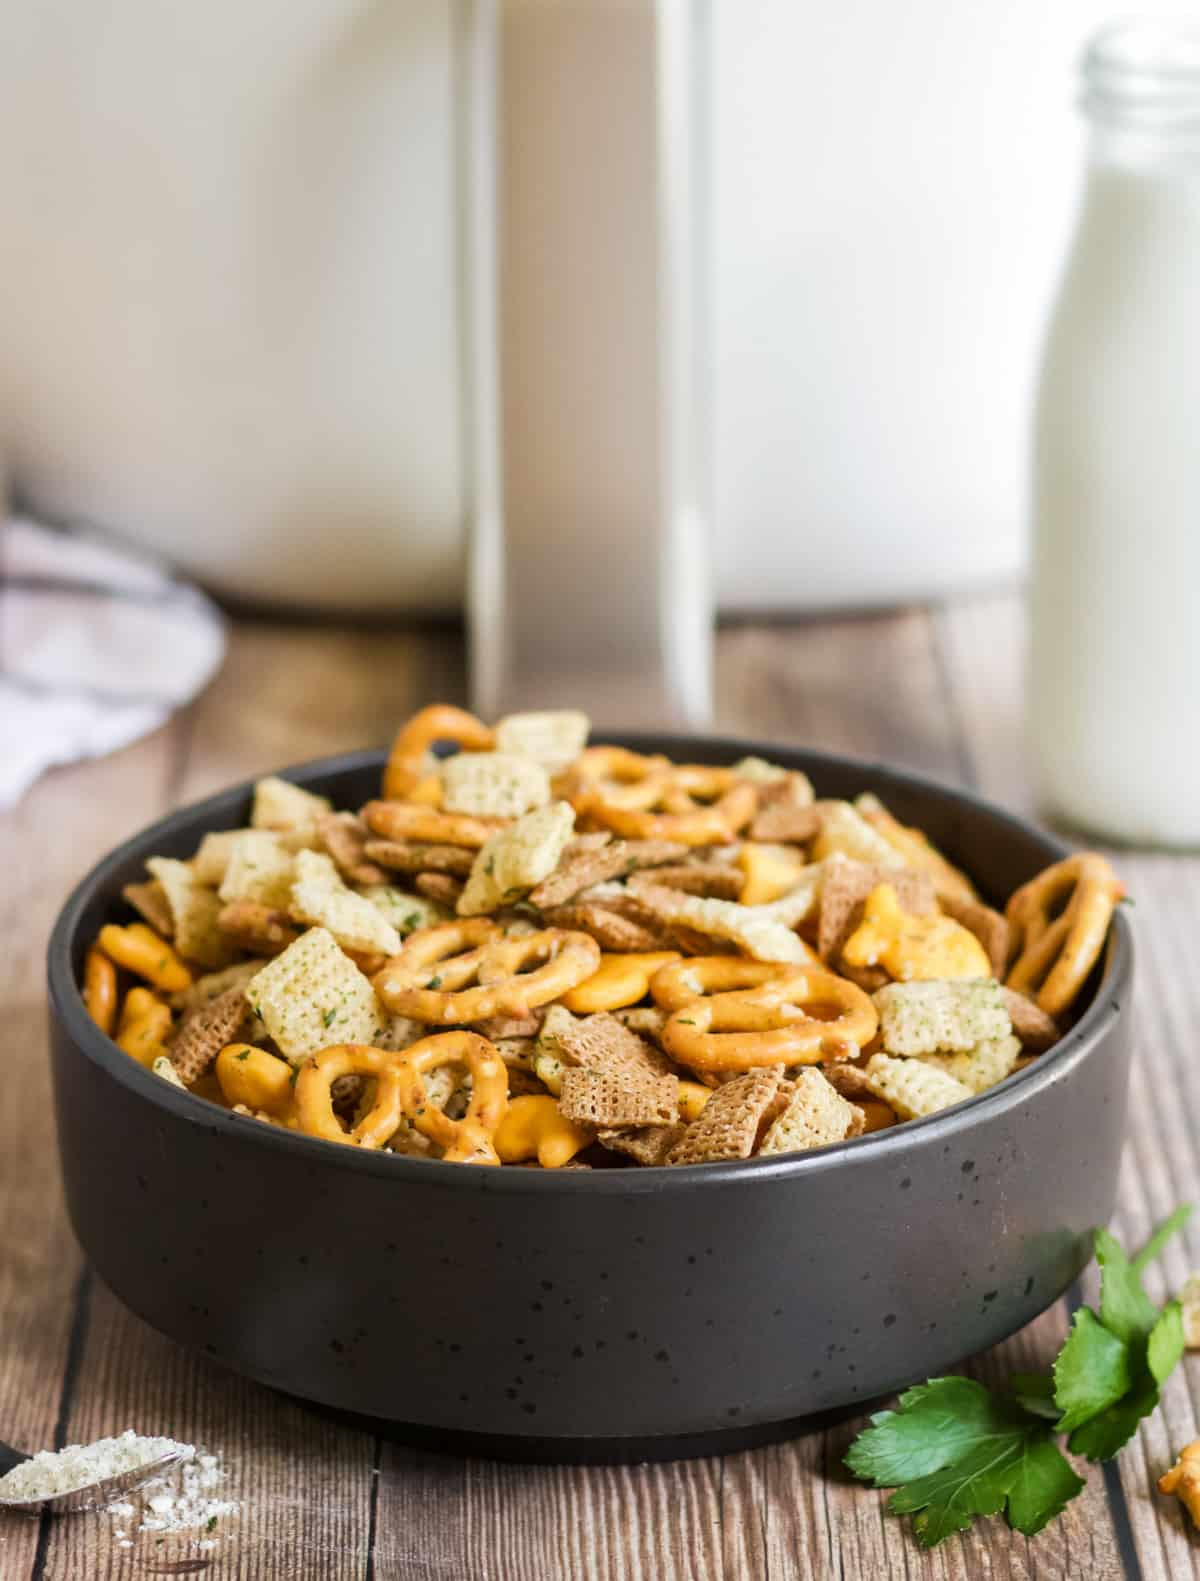 Chex mix in black bowl in front of air fryer